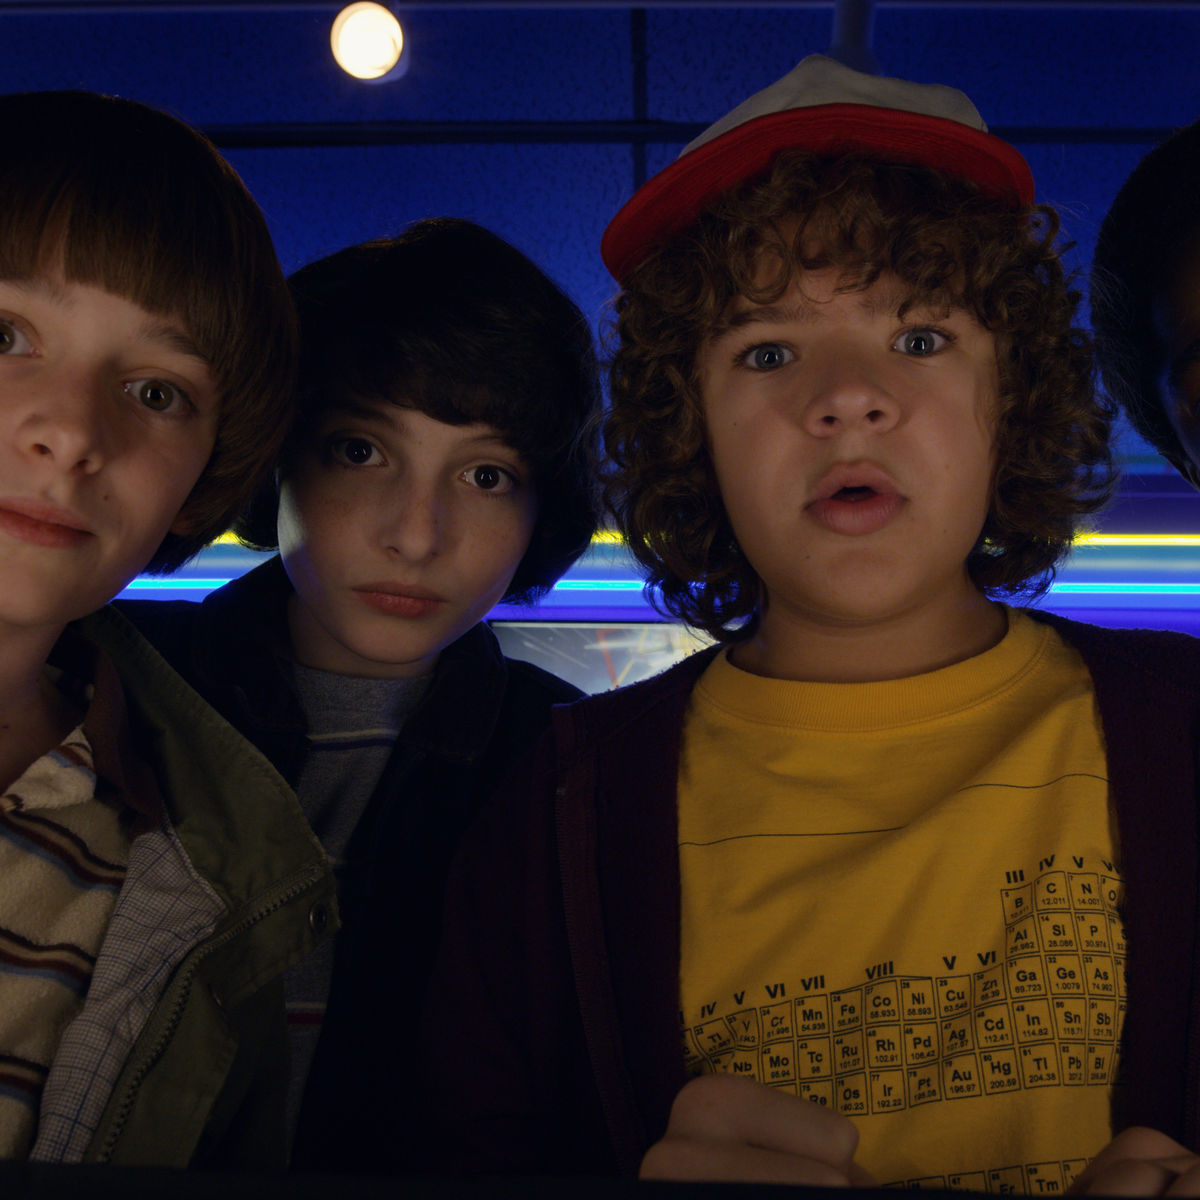 Stranger Things release date revealed in new teasers for third season